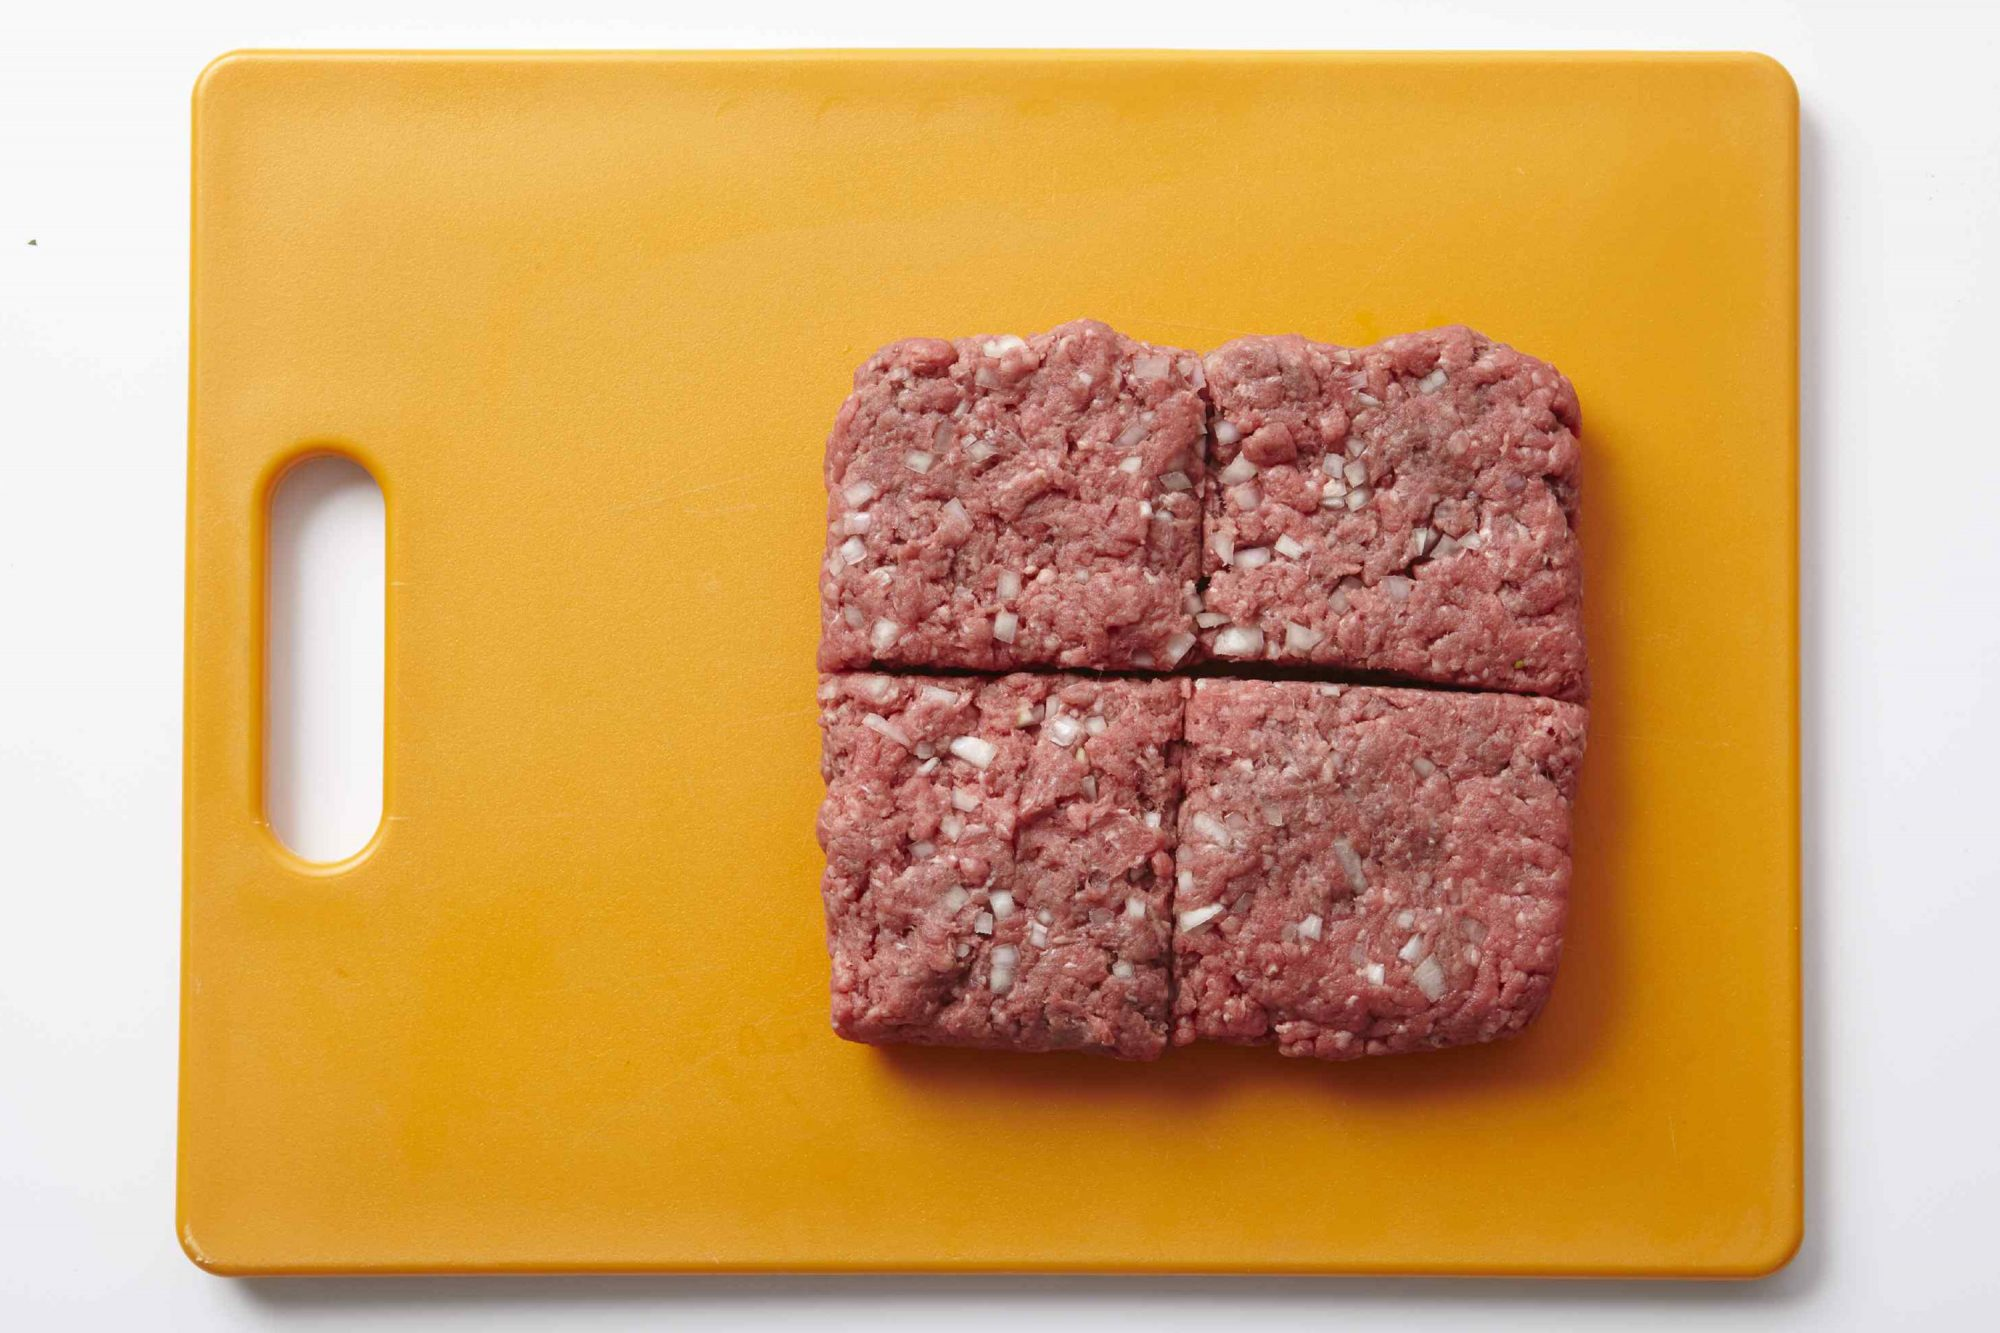 ground beef squared on yellow cutting board